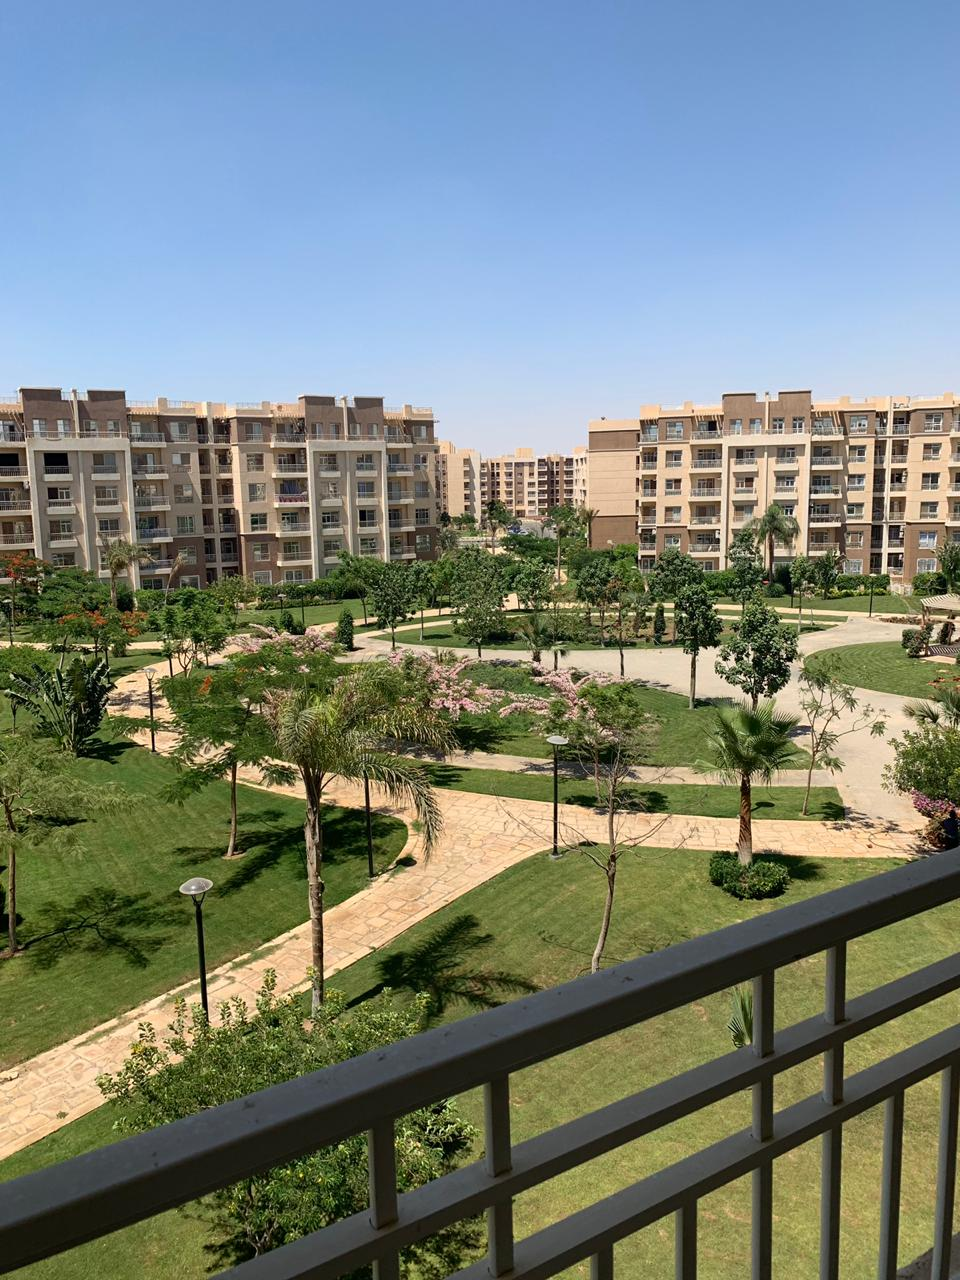 R 304 - Apartment in madinaty for sale